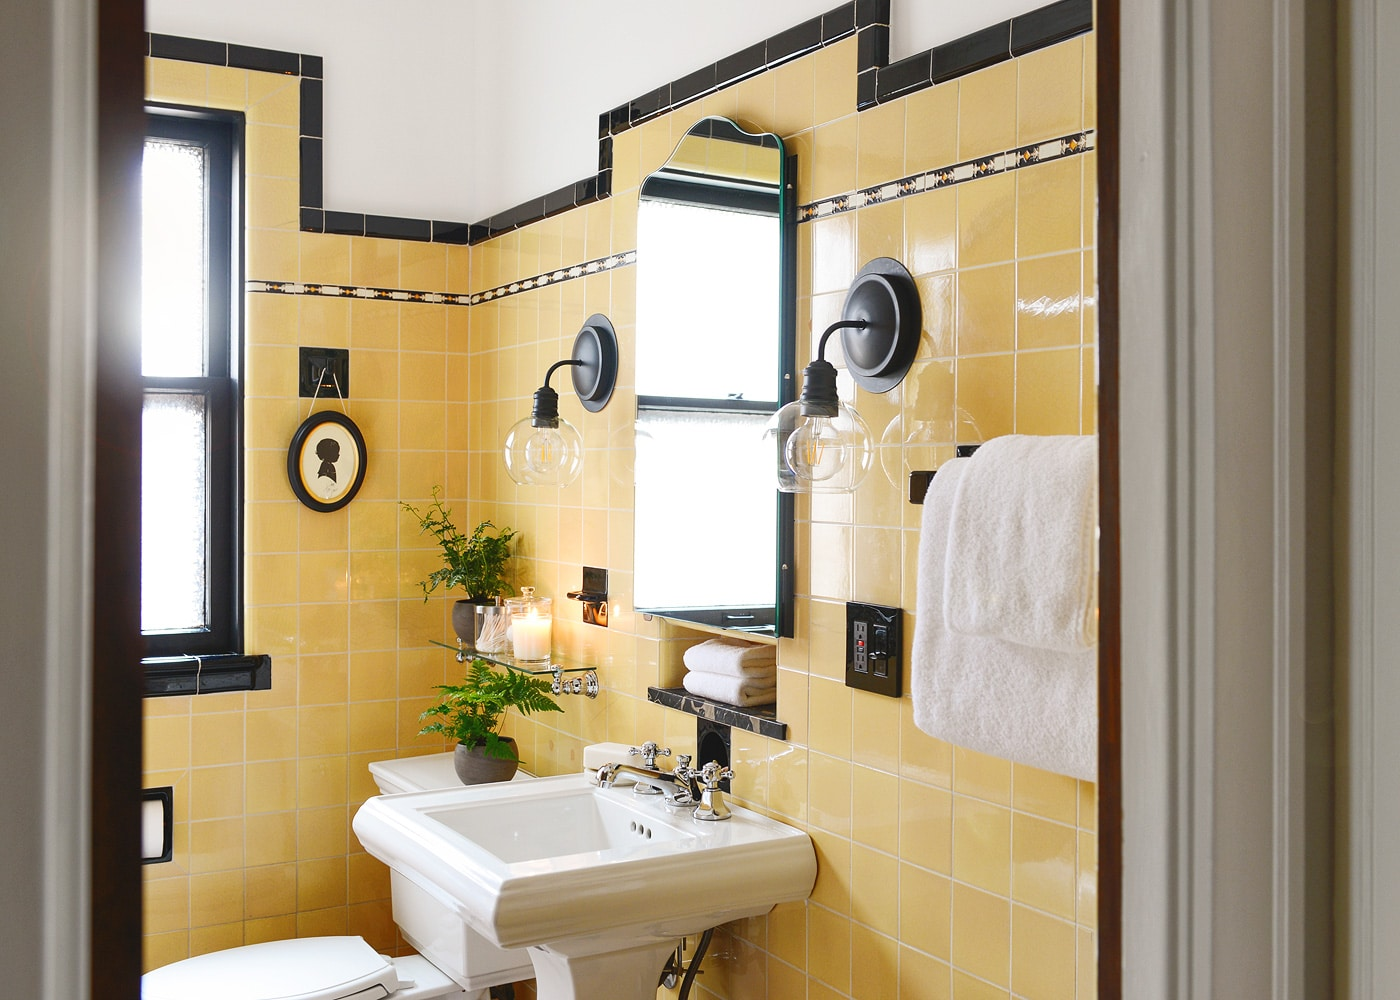 How To Refresh a Vintage Bathroom + Keep the Charm: II of II